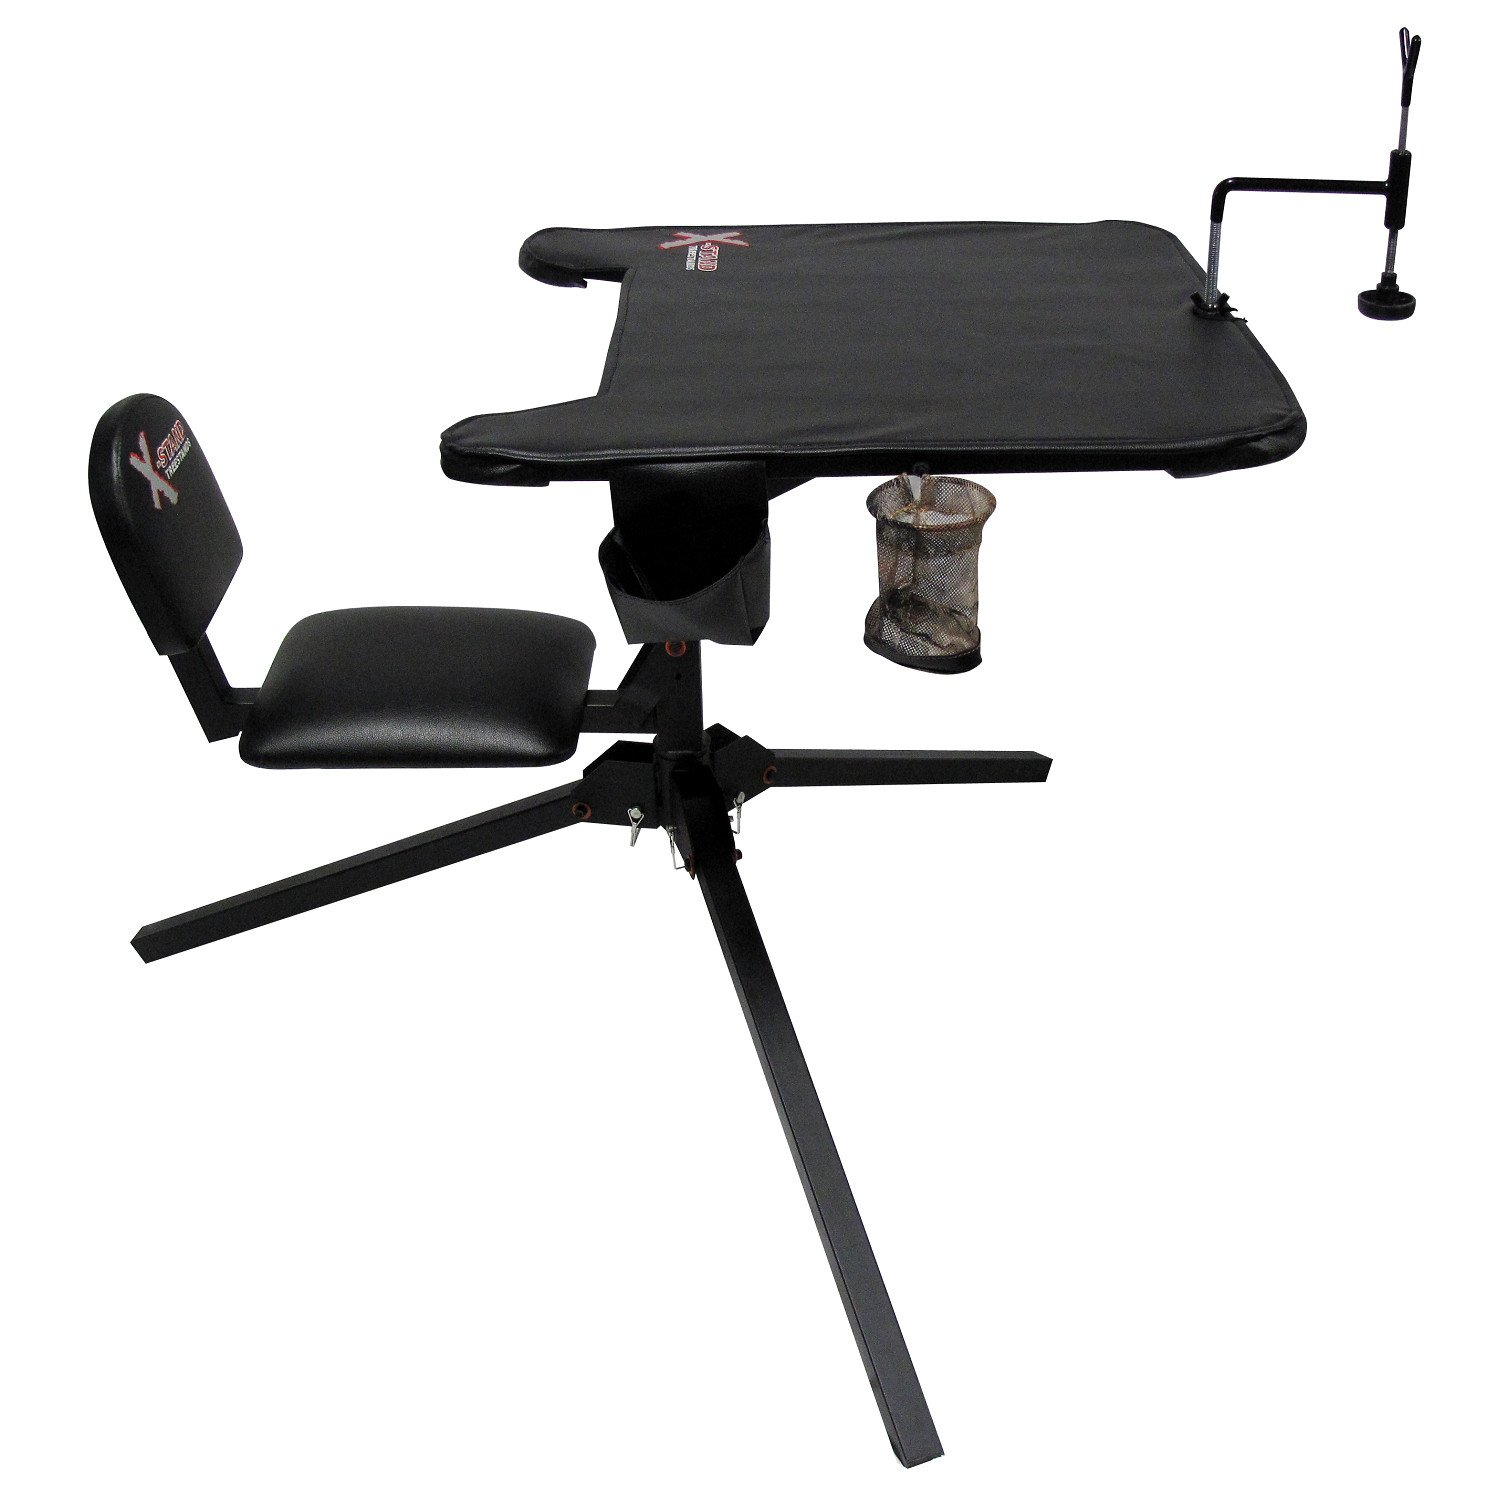 X-Stand x-Euctor 360 Shooting Bench 360 Swivel Black